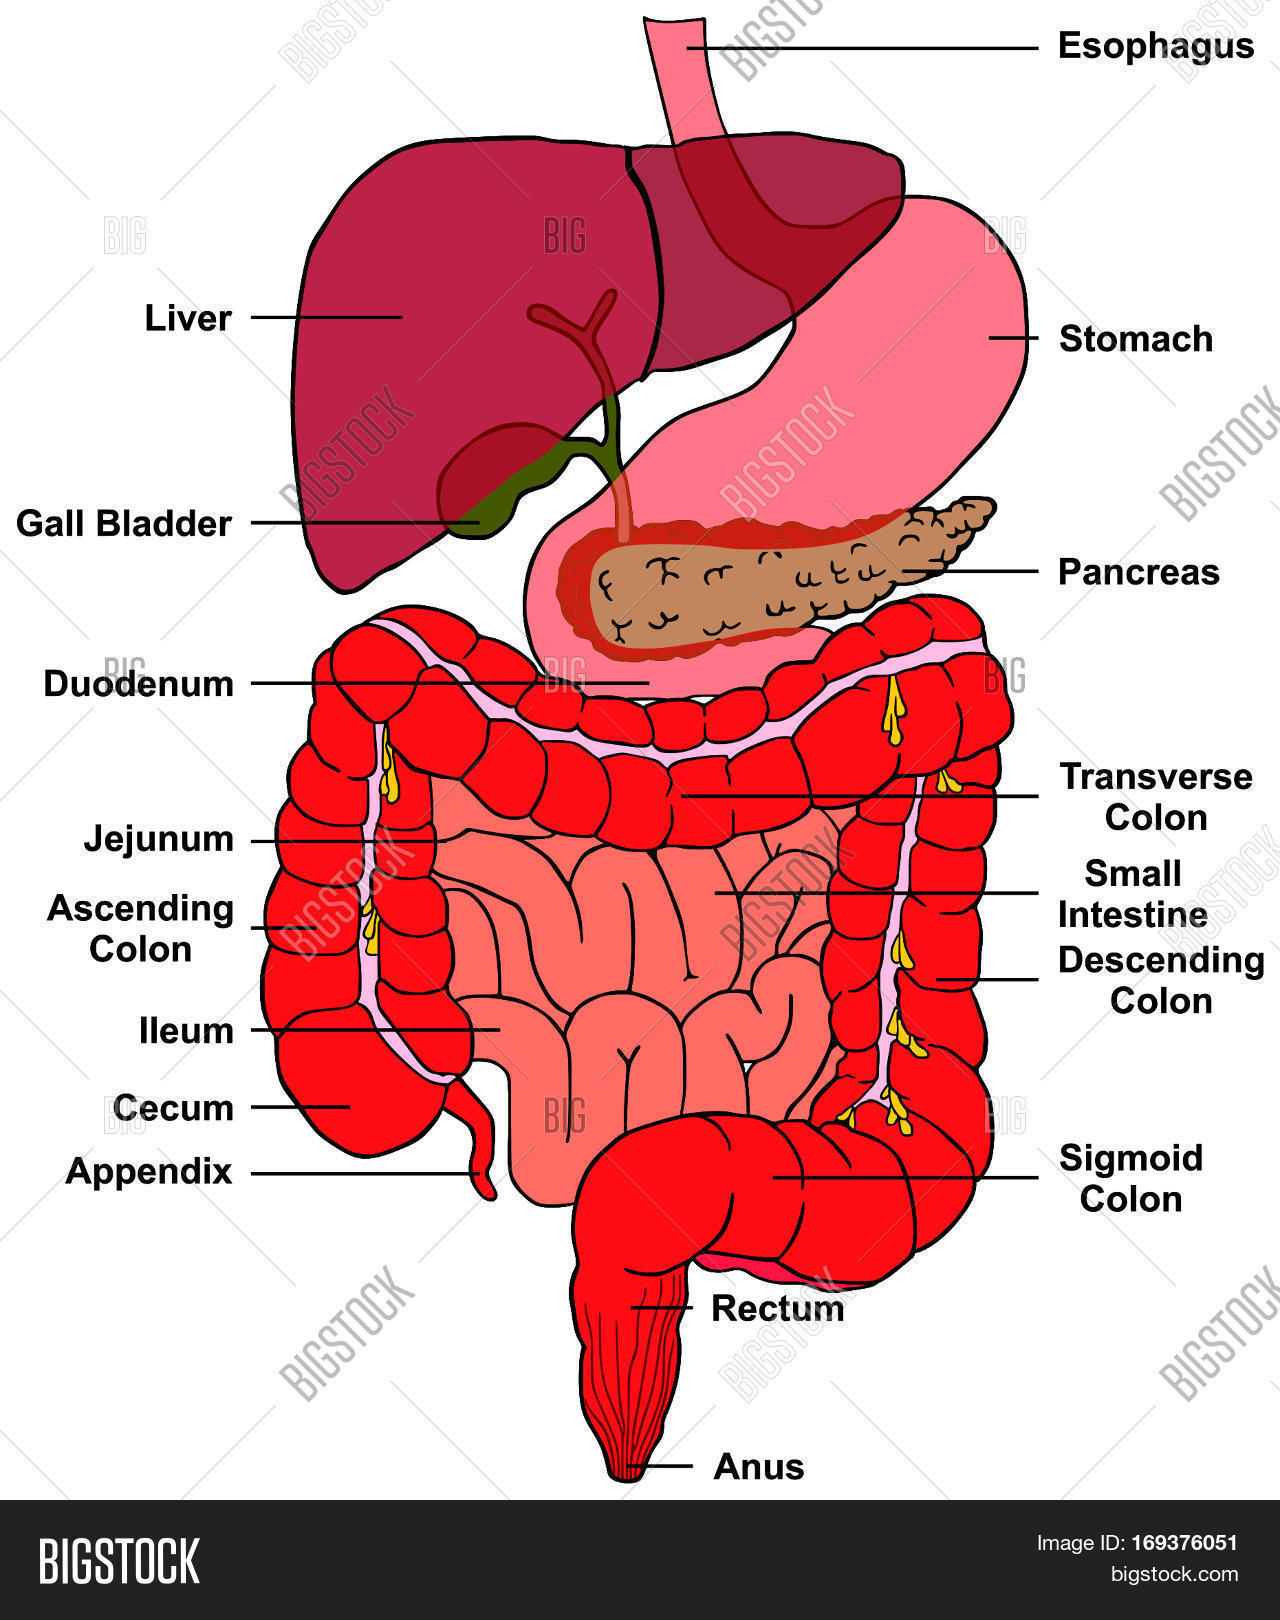 hight resolution of digestive system of human body anatomy with all parts esophagus stomach pancreas liver gall bladder duodenum